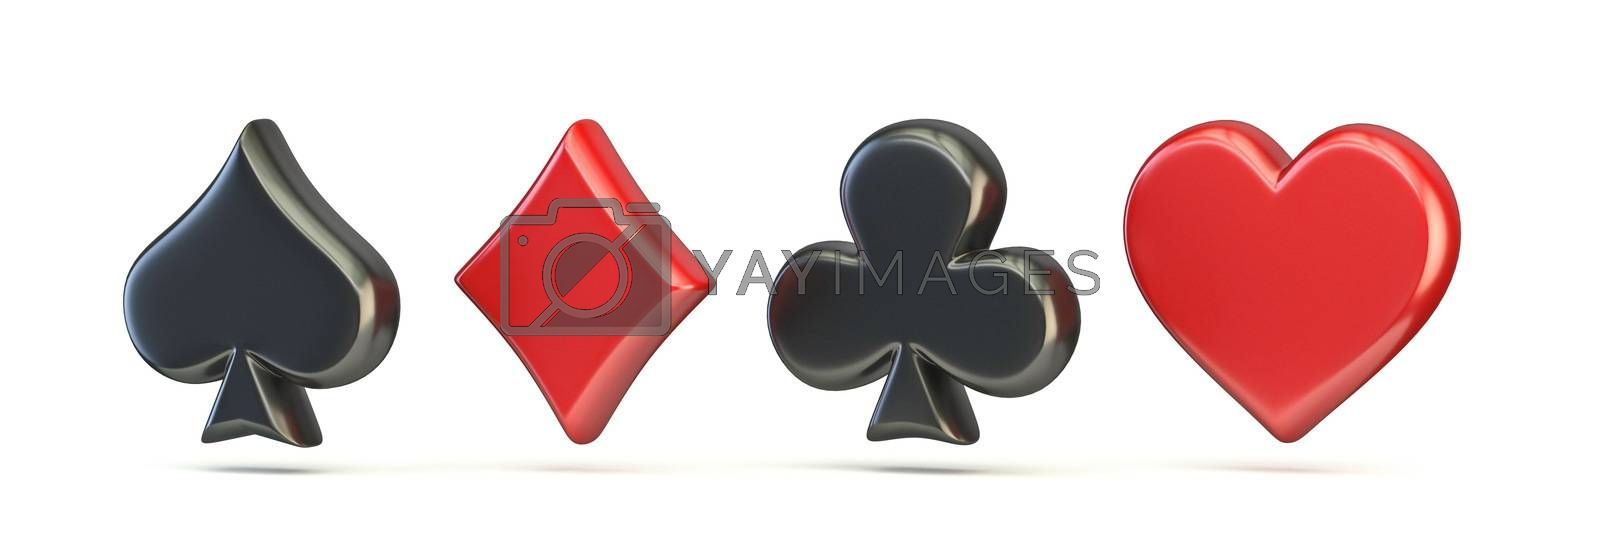 Spade, diamond, club and heart 3D render illustration isolated on white background